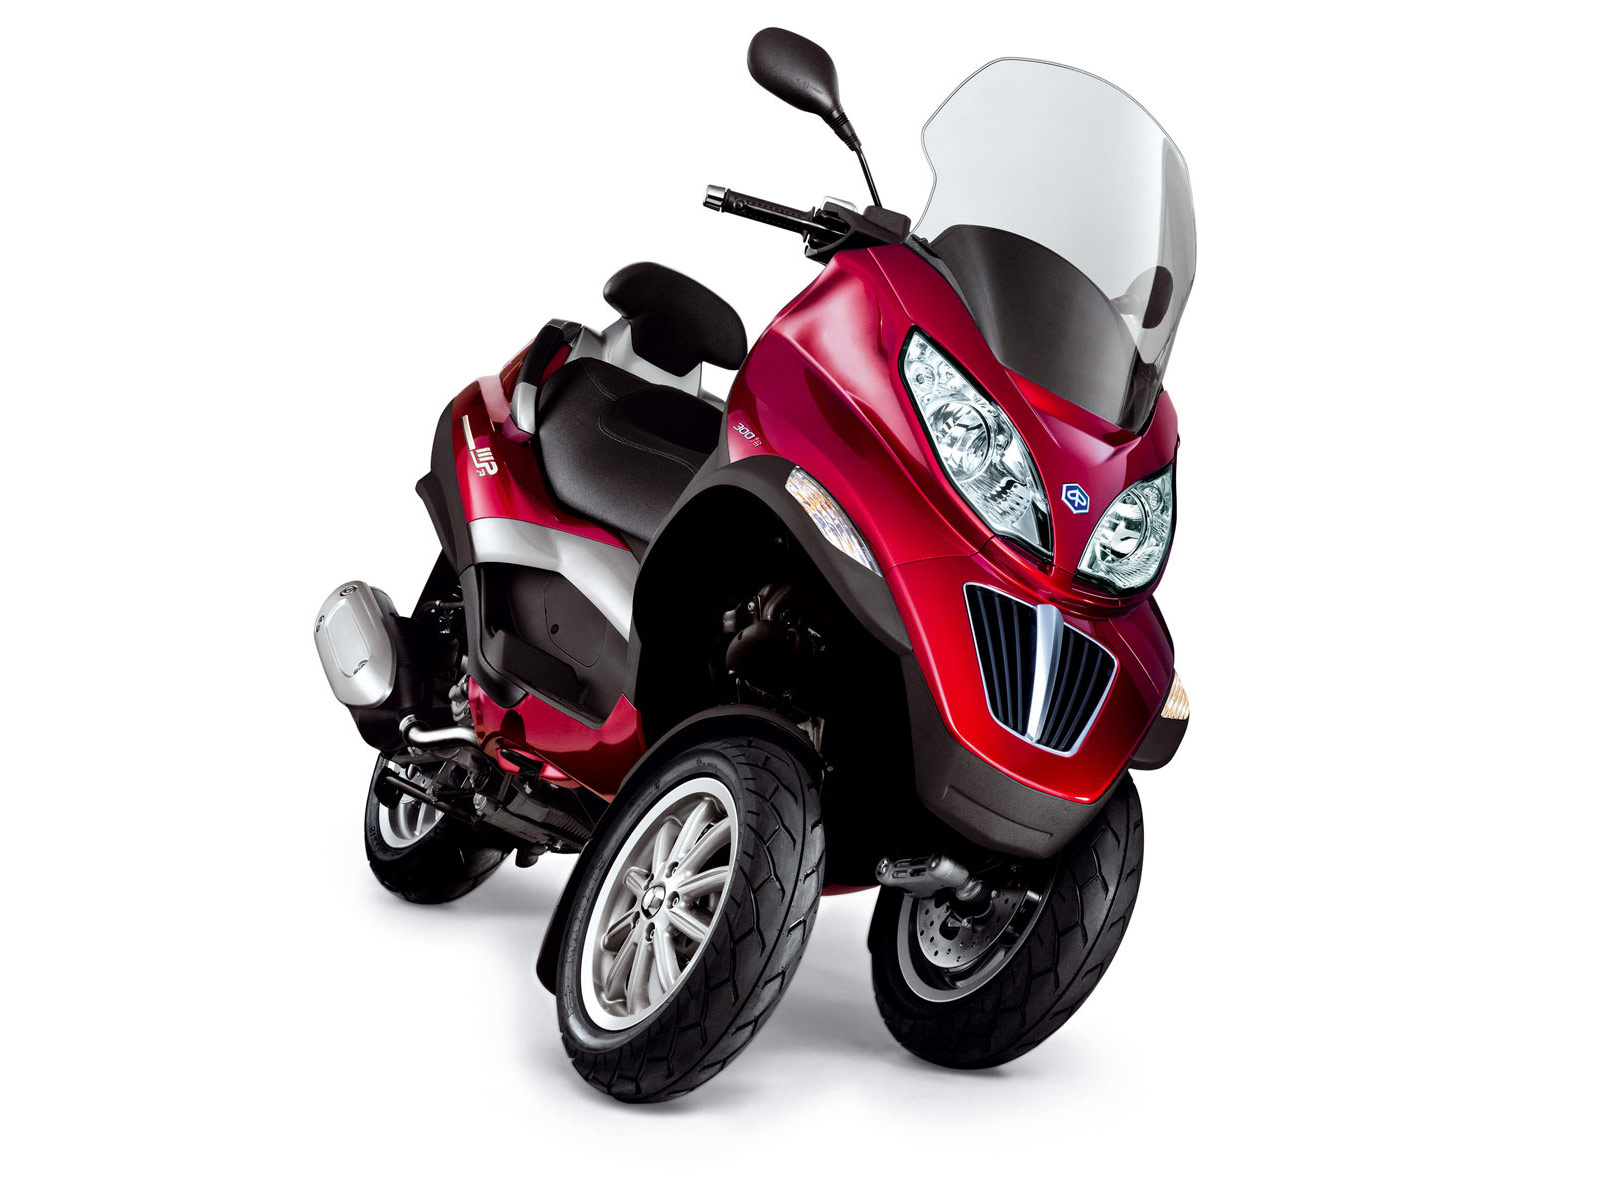 scooter accident lawyers info 2010 piaggio mp3 lt300ie. Black Bedroom Furniture Sets. Home Design Ideas